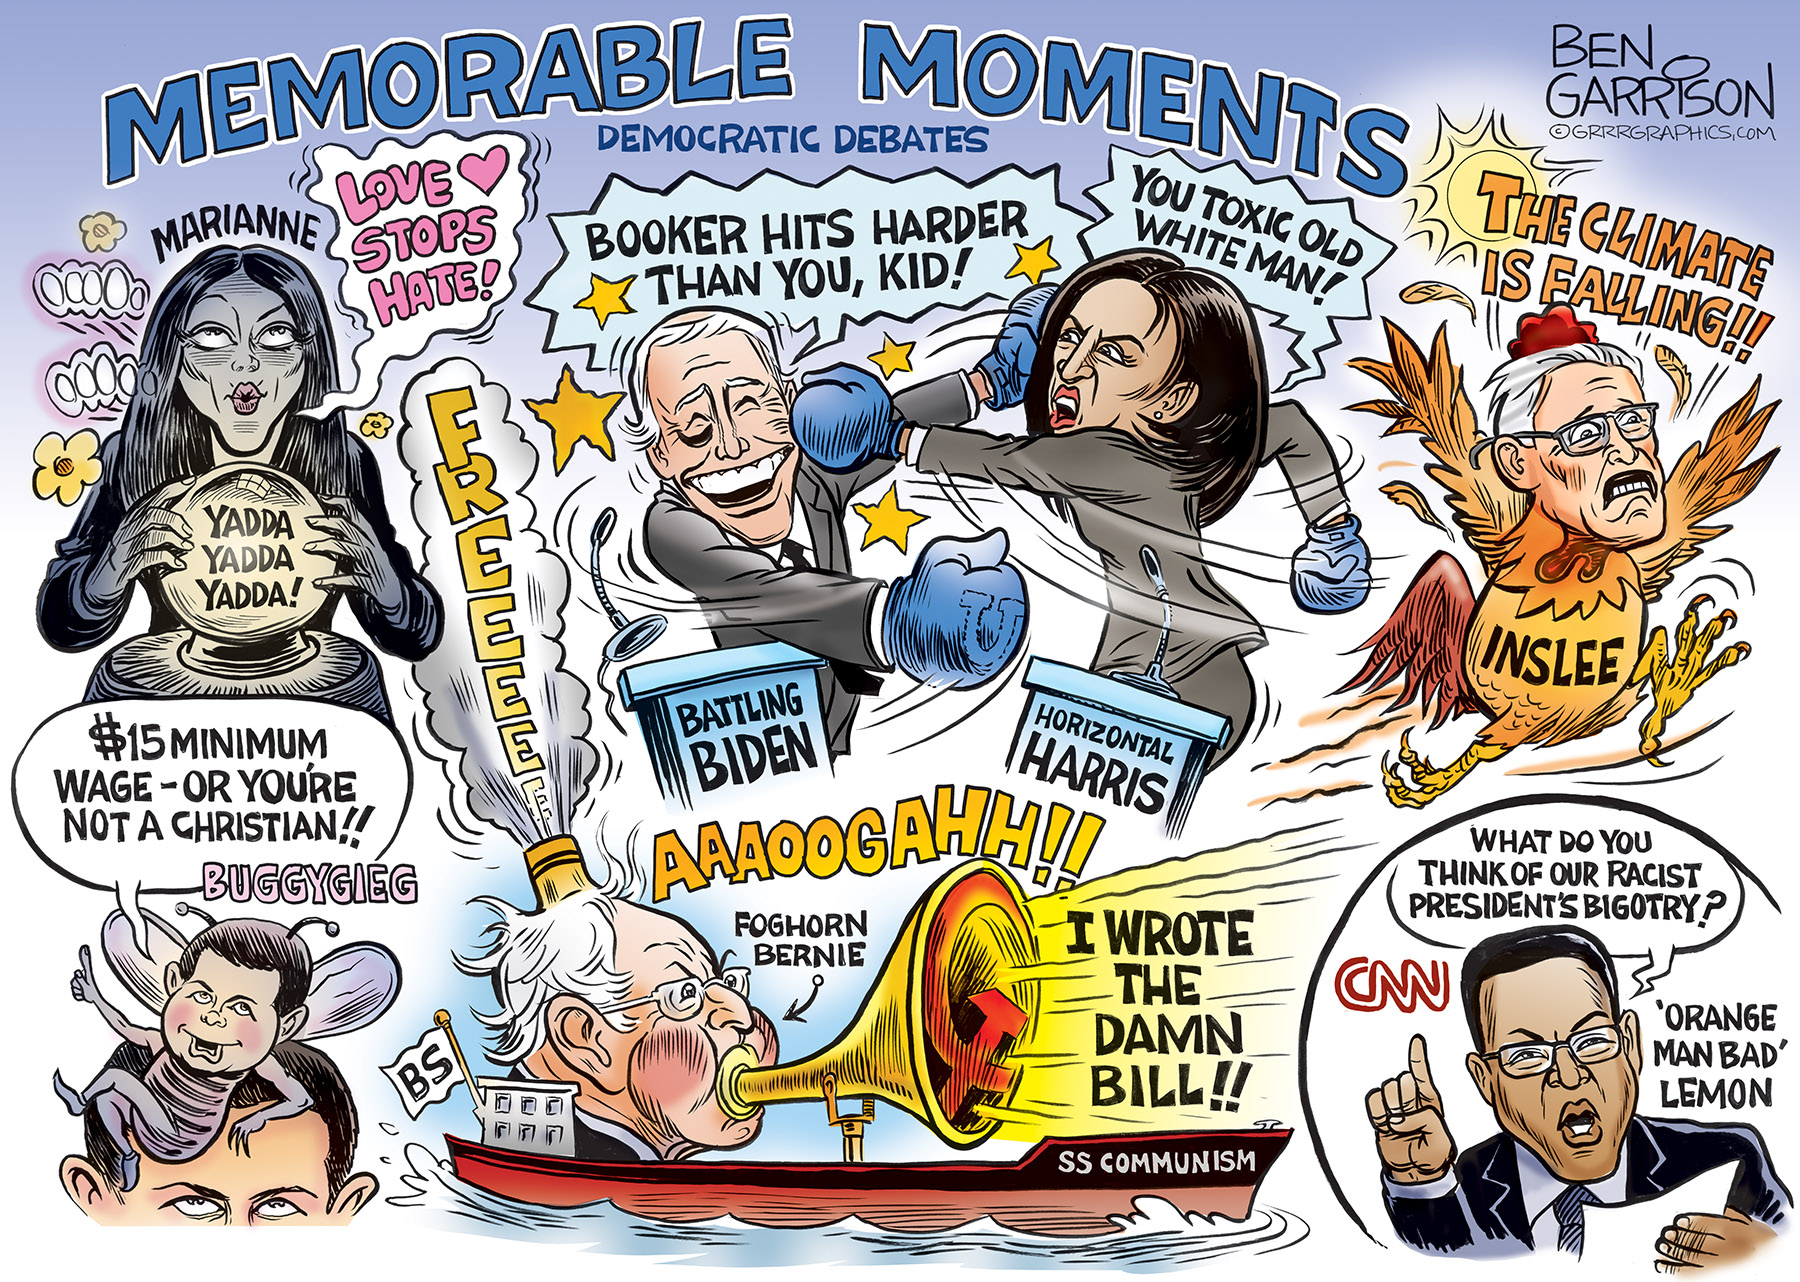 Democrats Debate Conservativecartoons